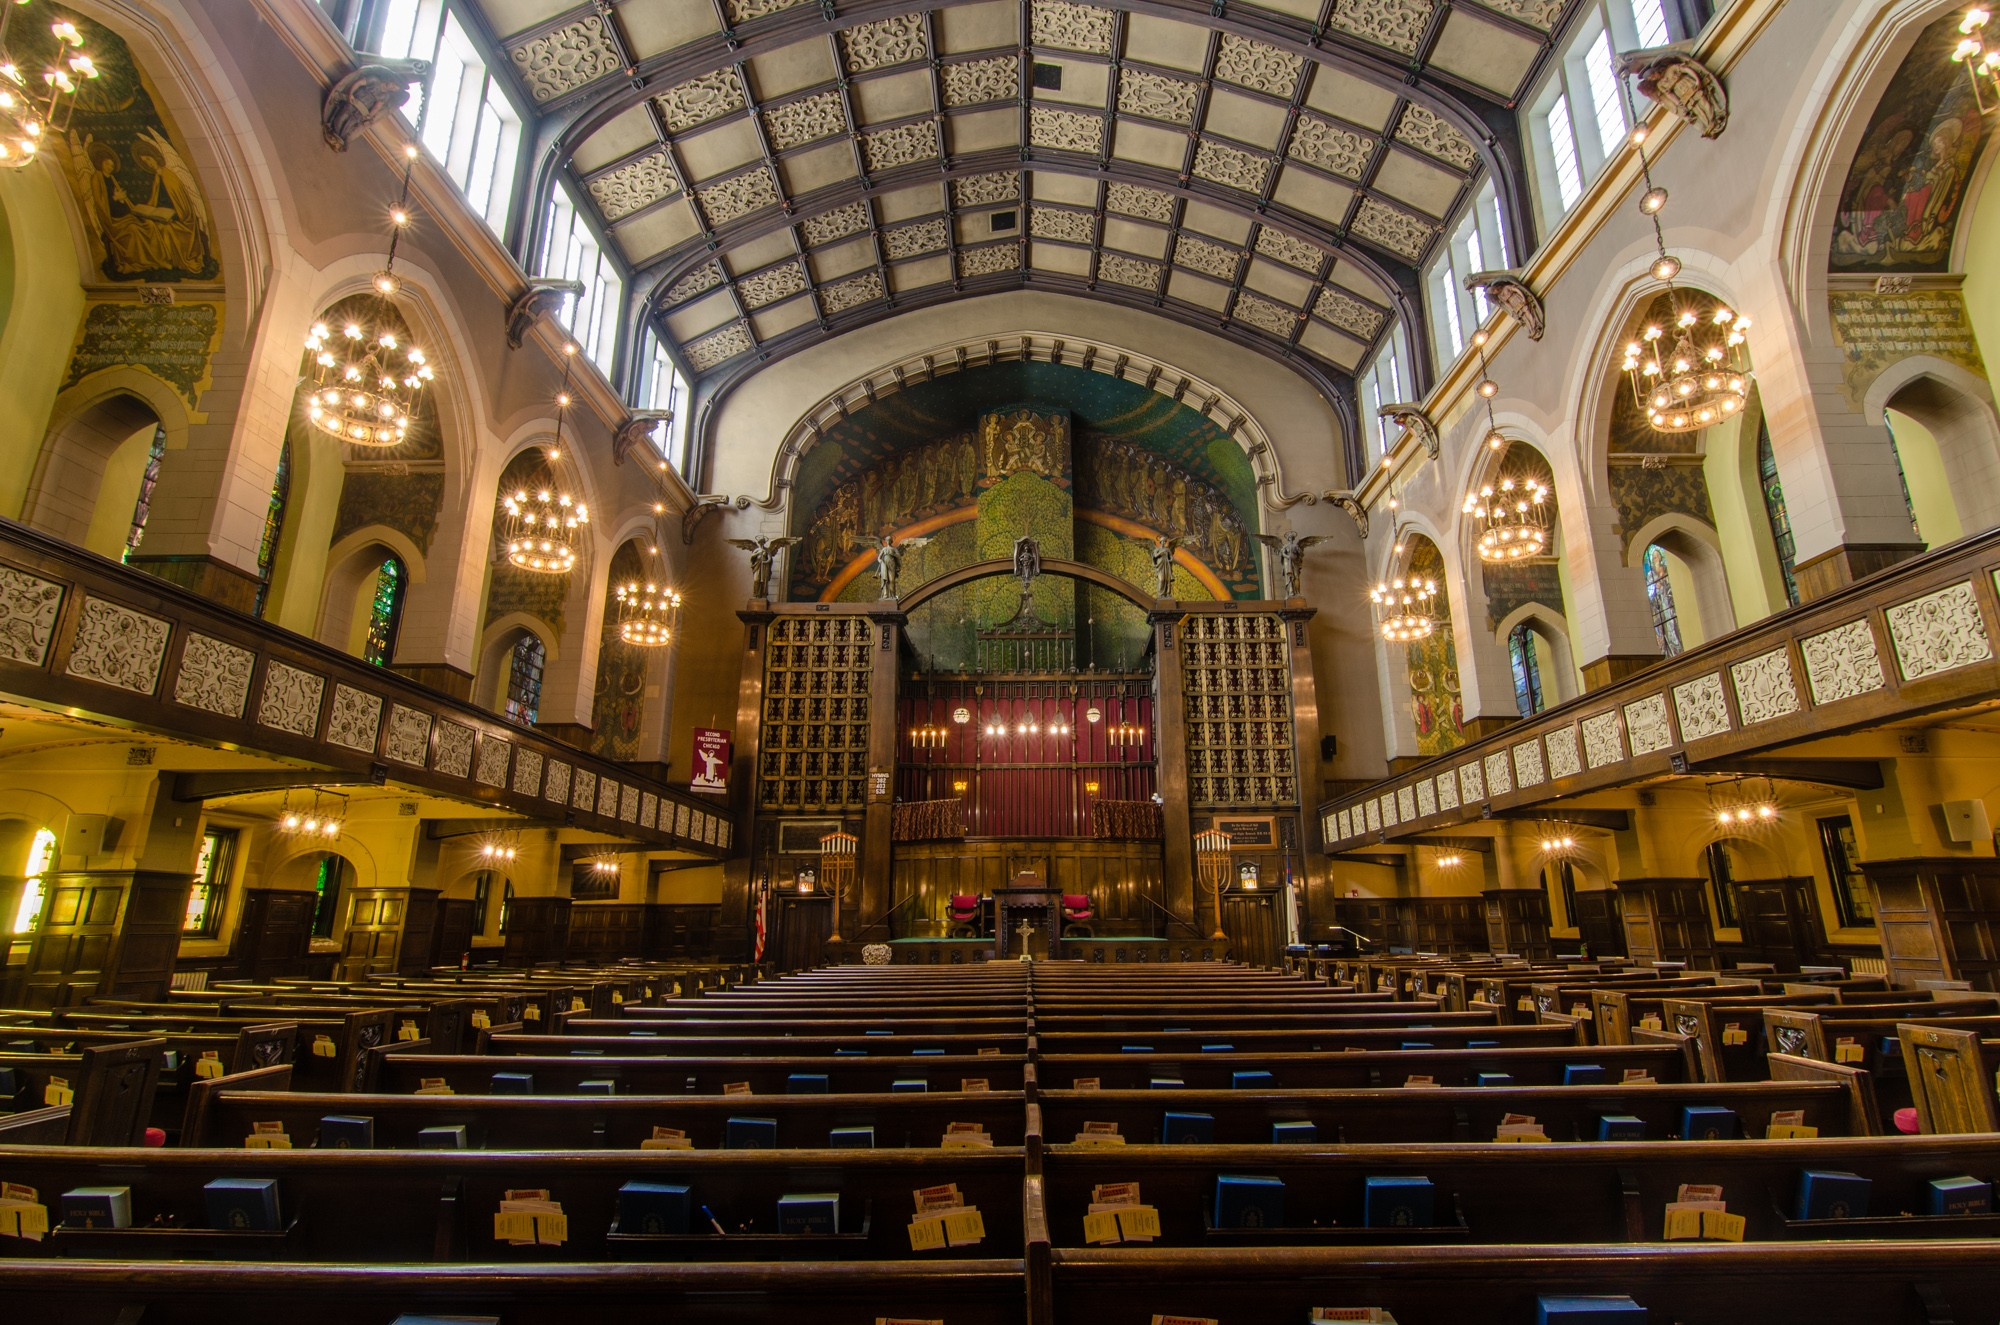 A cavernous church sanctuary with light plaster walls, wood trim, and rows of pews.